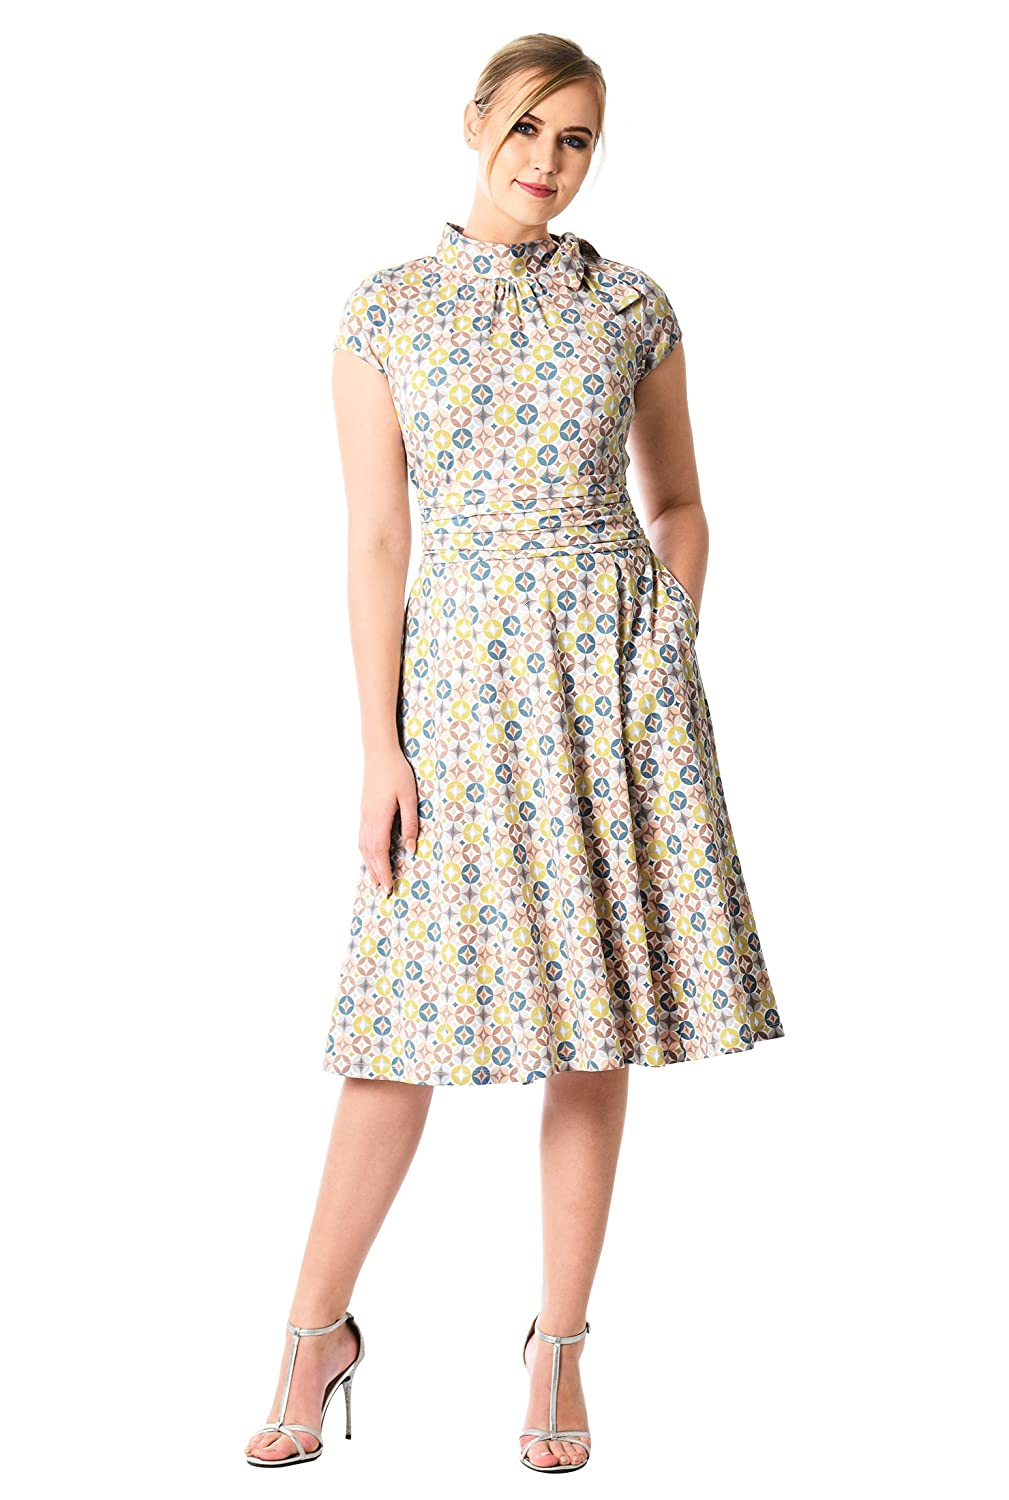 Pin Up Dresses | Pin Up Clothing eShakti Womens Bow tie Pleat Waist Graphic Print Cotton Knit Dress $62.95 AT vintagedancer.com